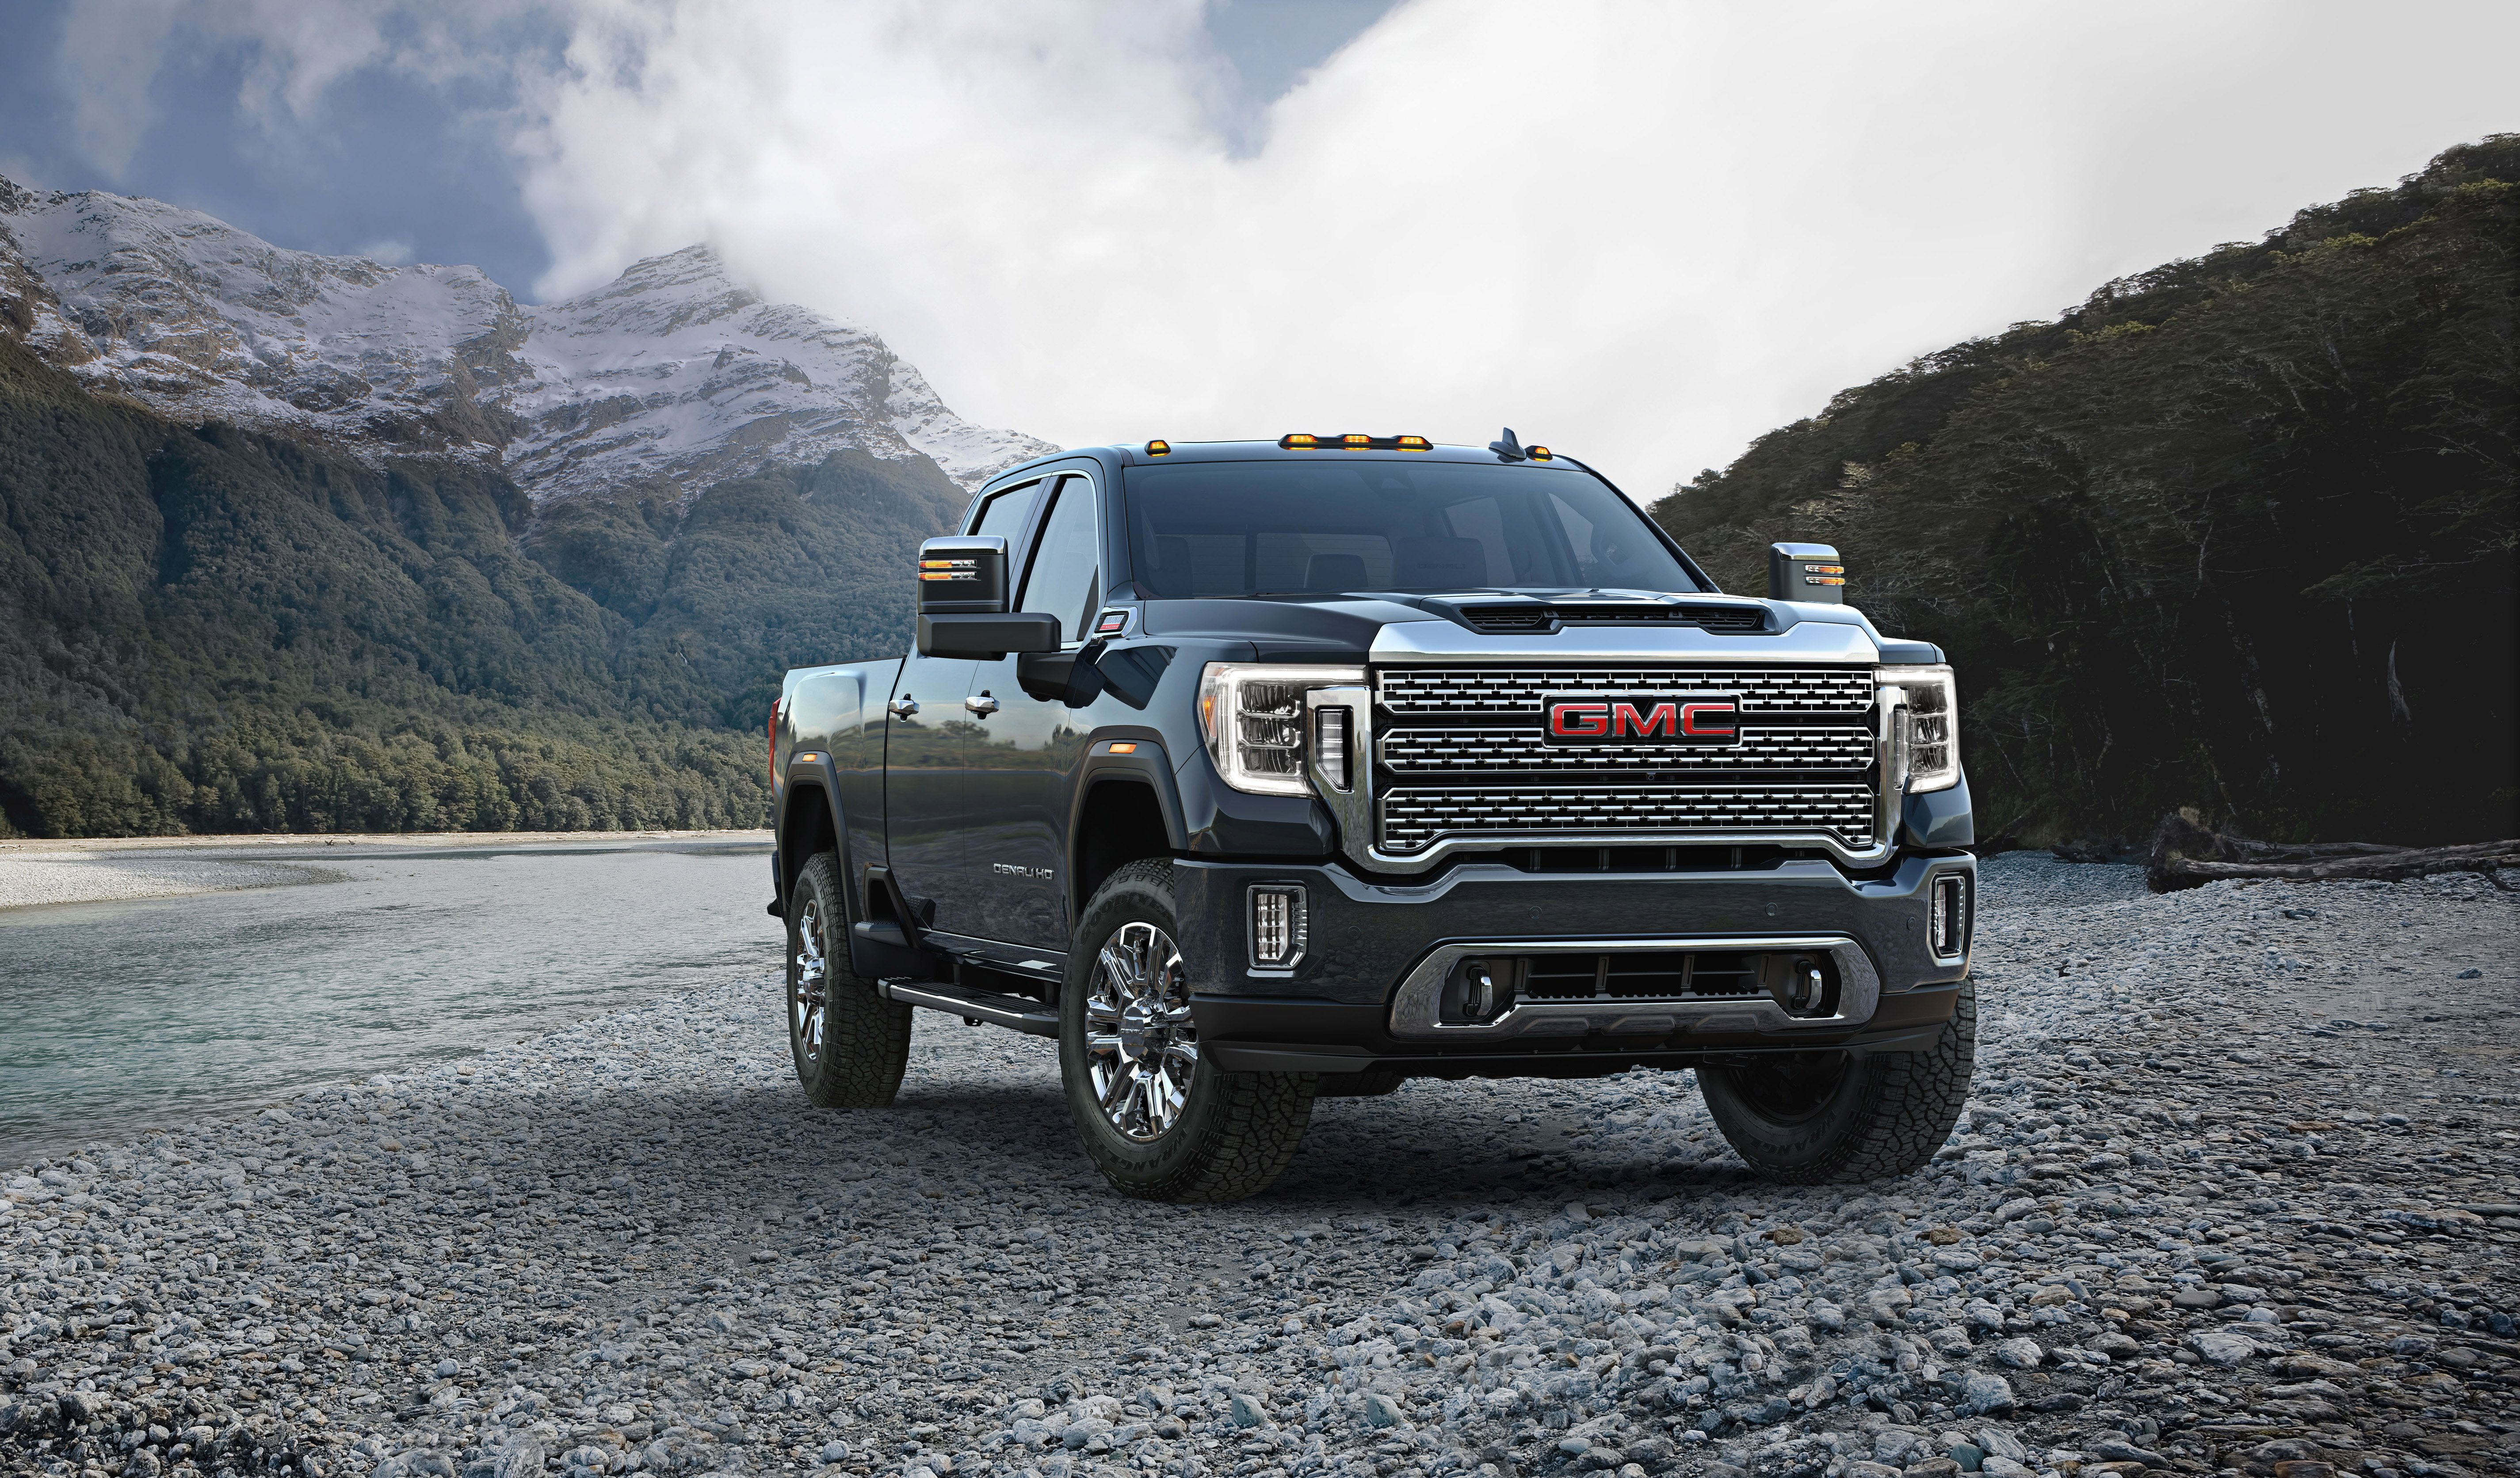 2020 Gmc Sierra Hd Review, Pricing, And Specs 2020 Gmc Sierra 2500 Duramax Specs